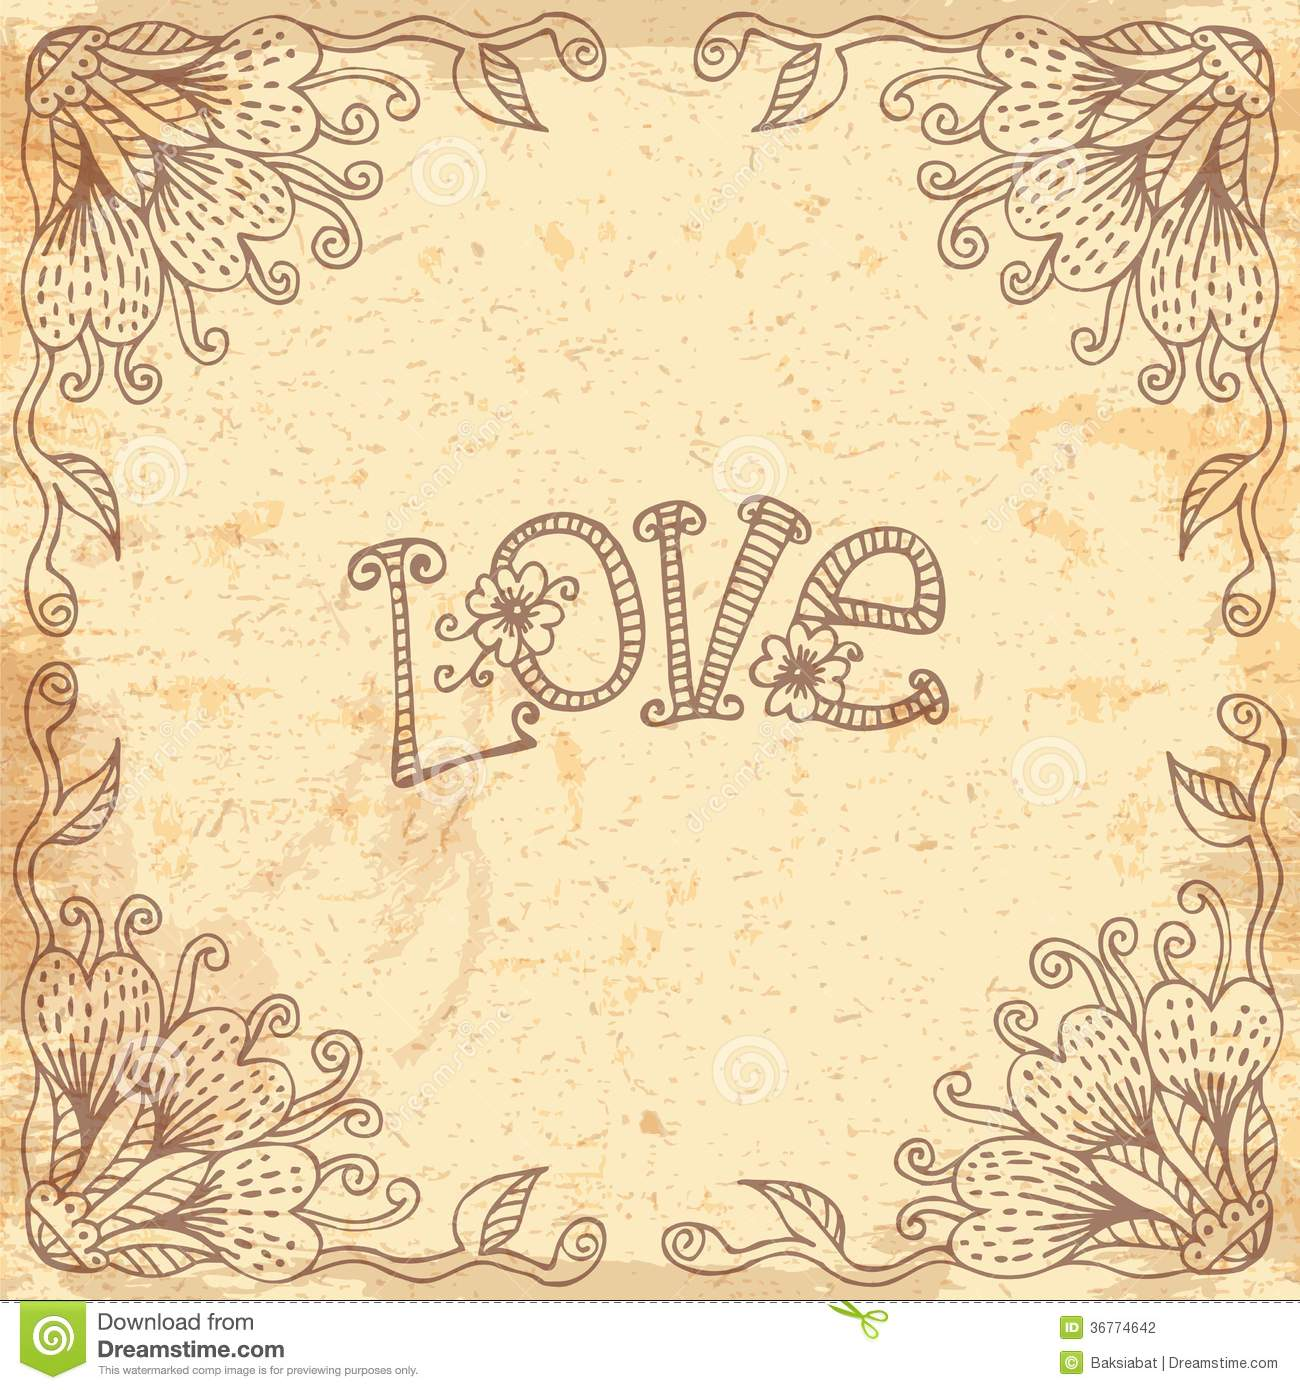 vintage valentine background valentines - photo #24